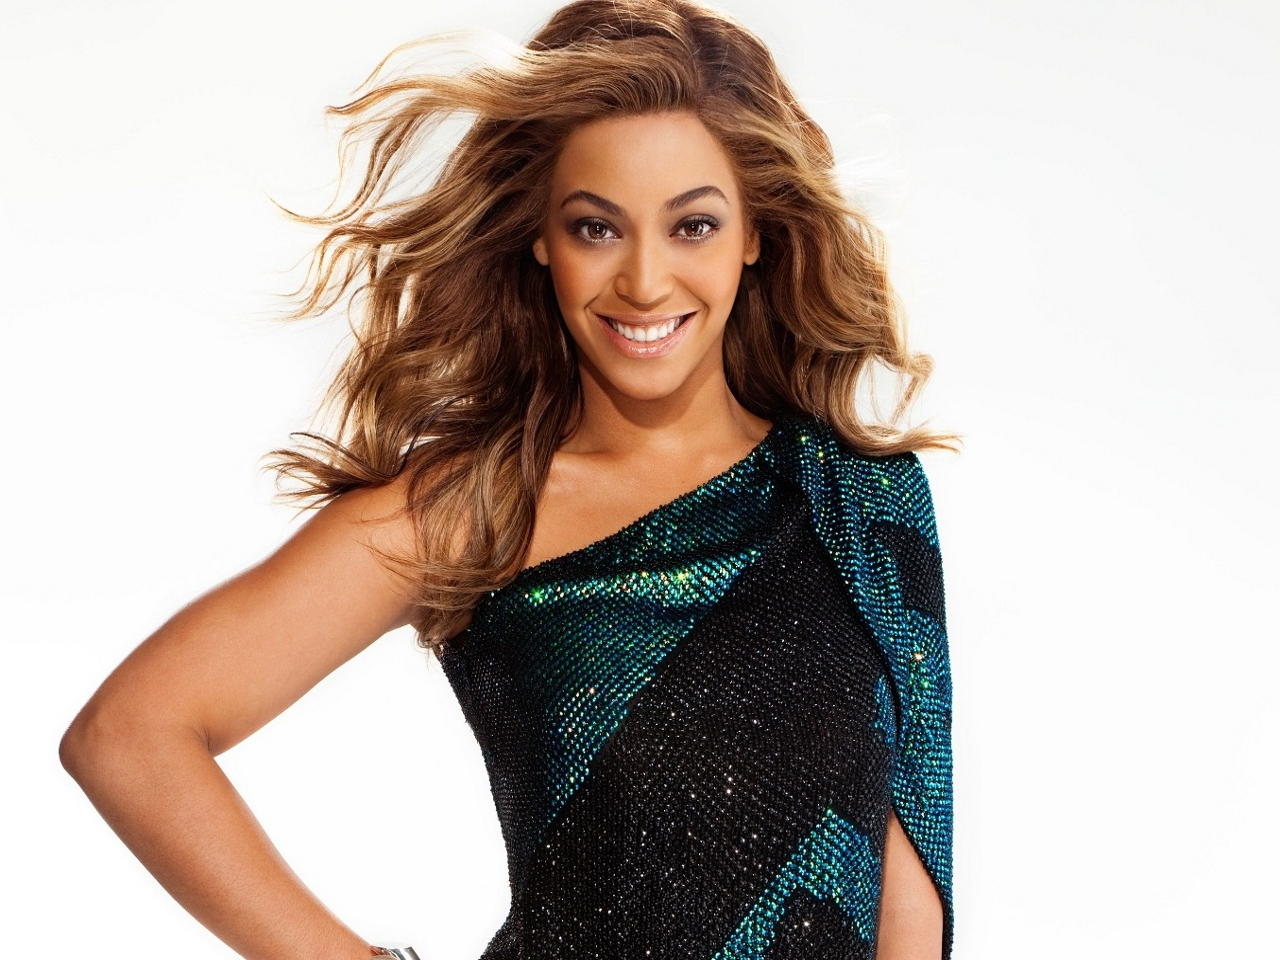 beyonce beyonce wallpaper 32688134 fanpop